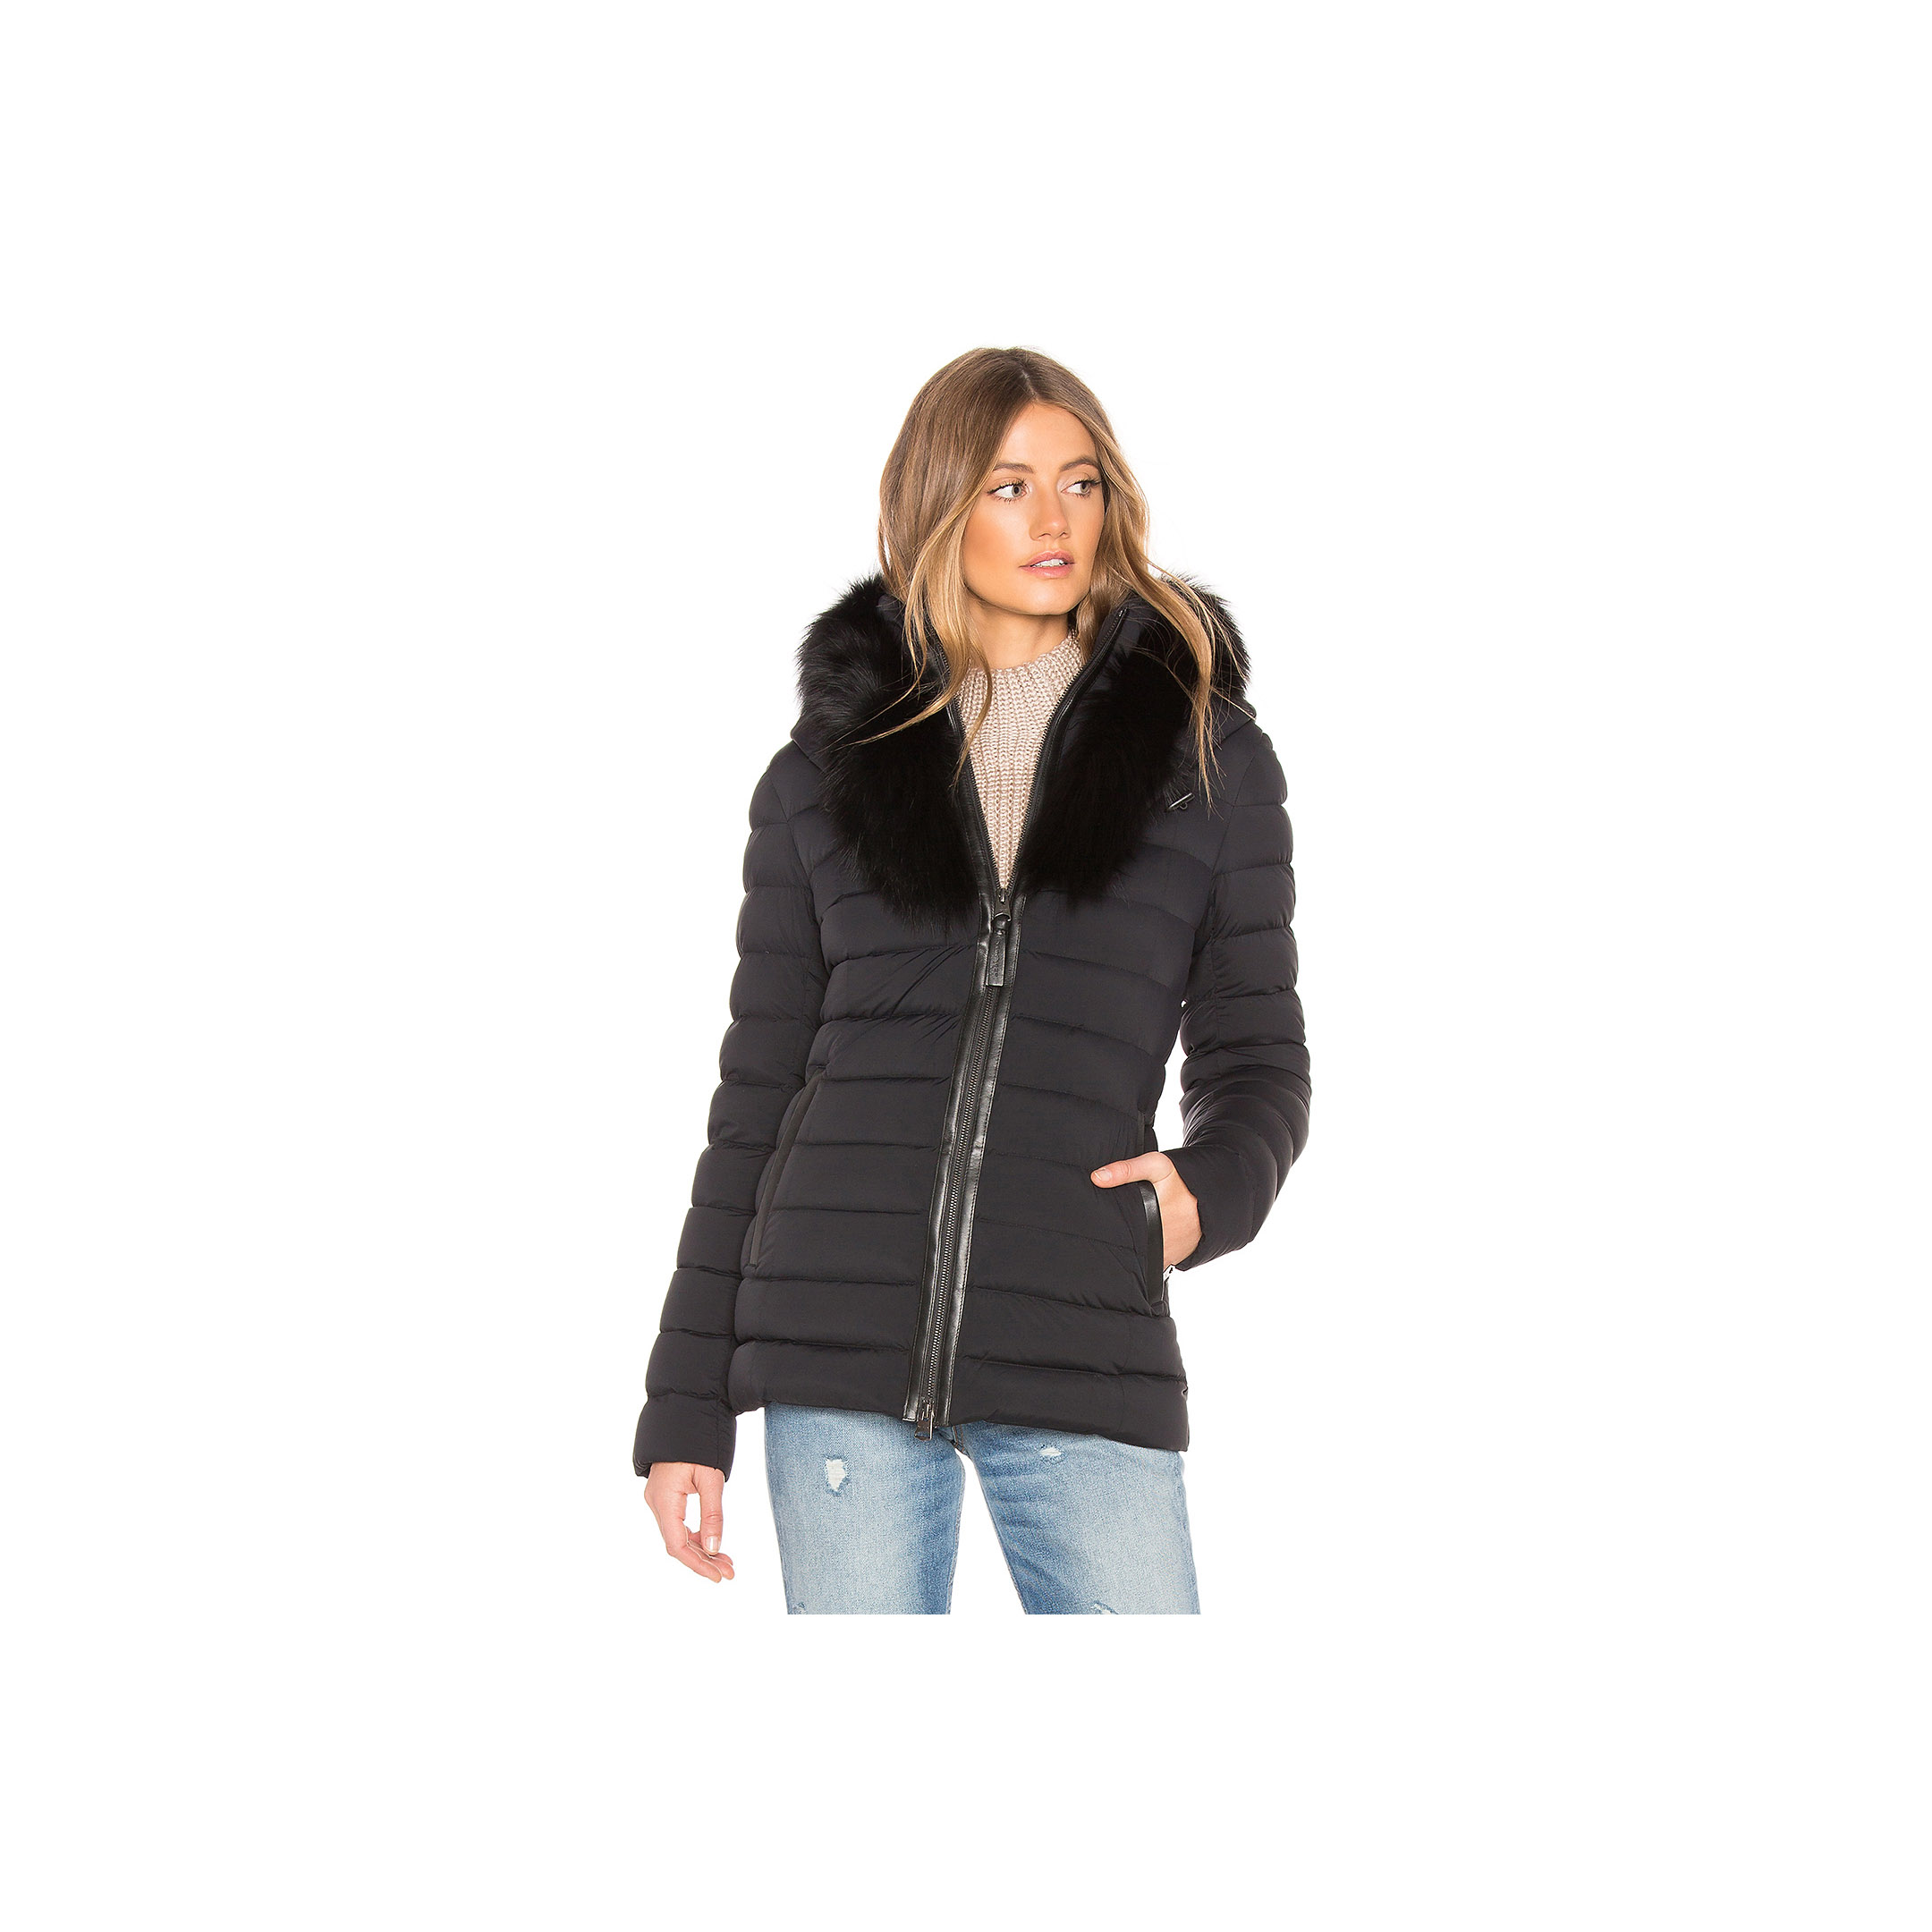 e71ae5cd2 Best Puffer Coats 2018 - Womens Puffer Jackets | Real Simple